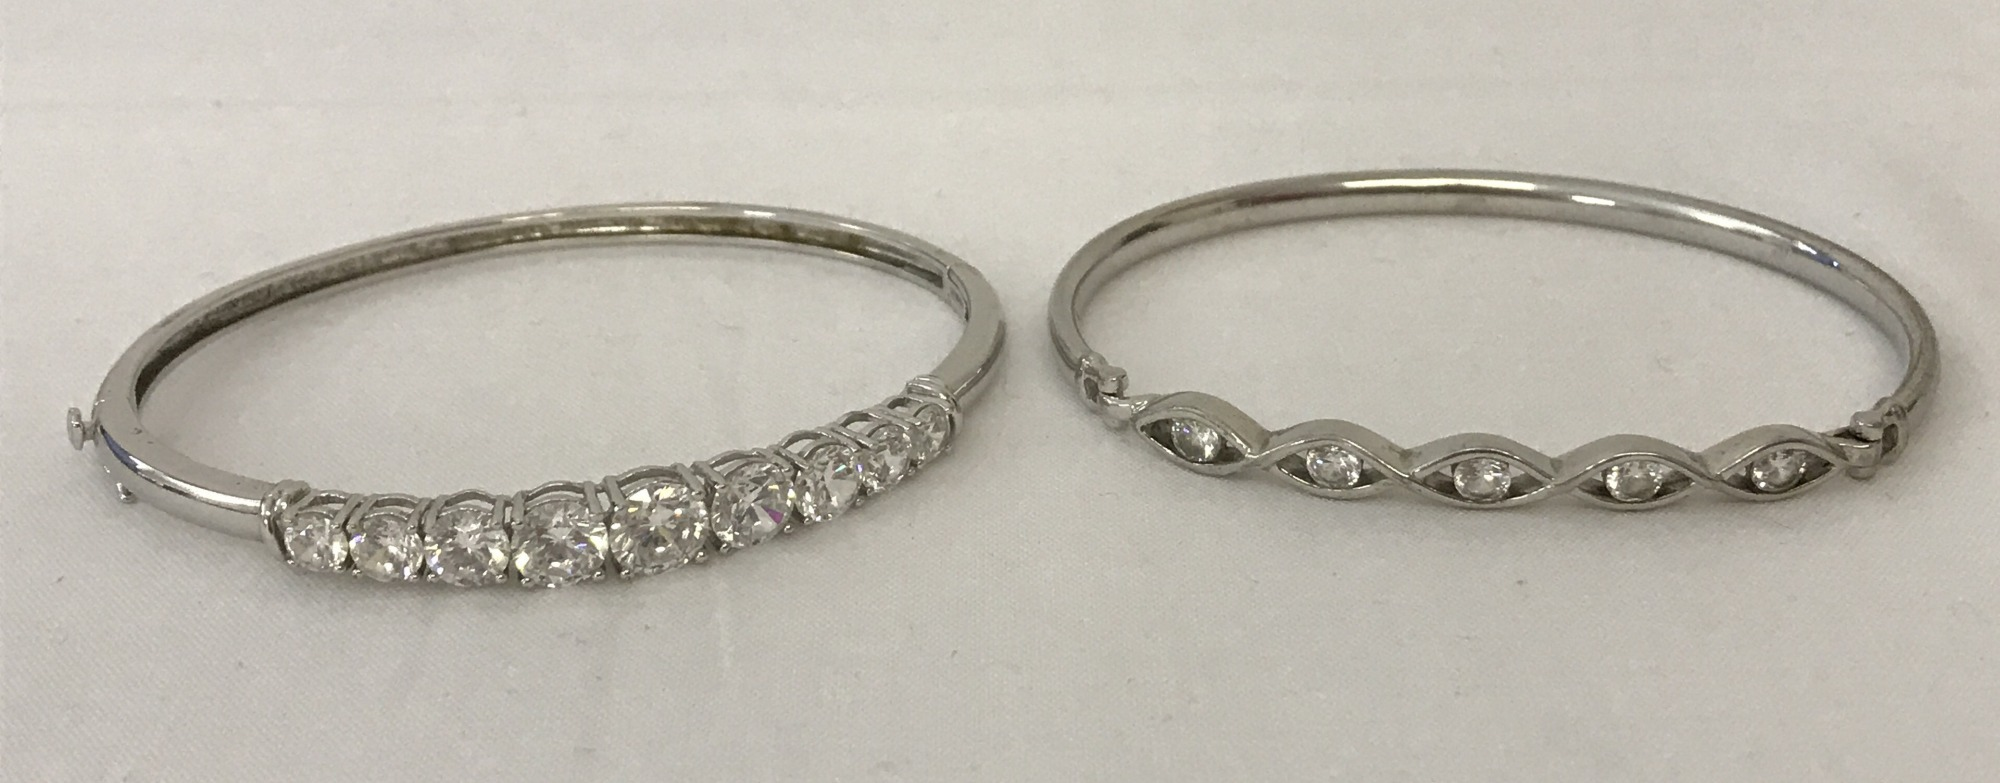 Lot 12 - 2 ladies silver bangles both set with cubic zirconia stones.